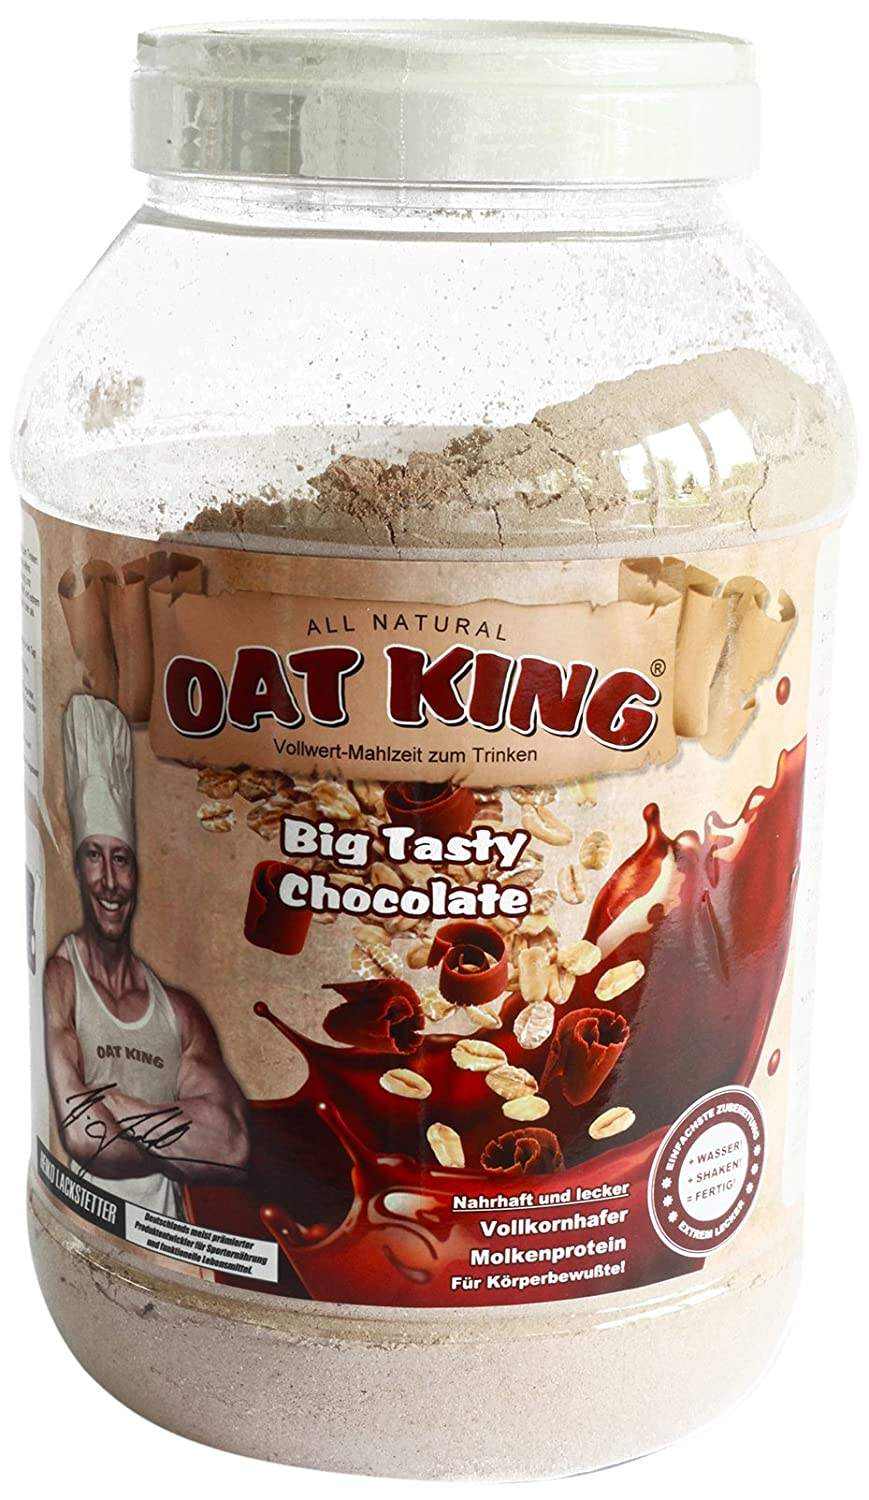 LSP Oat King Oats & Whey Protein Drink Big Tasty Chocolate - 1980 gr: Amazon.es: Salud y cuidado personal